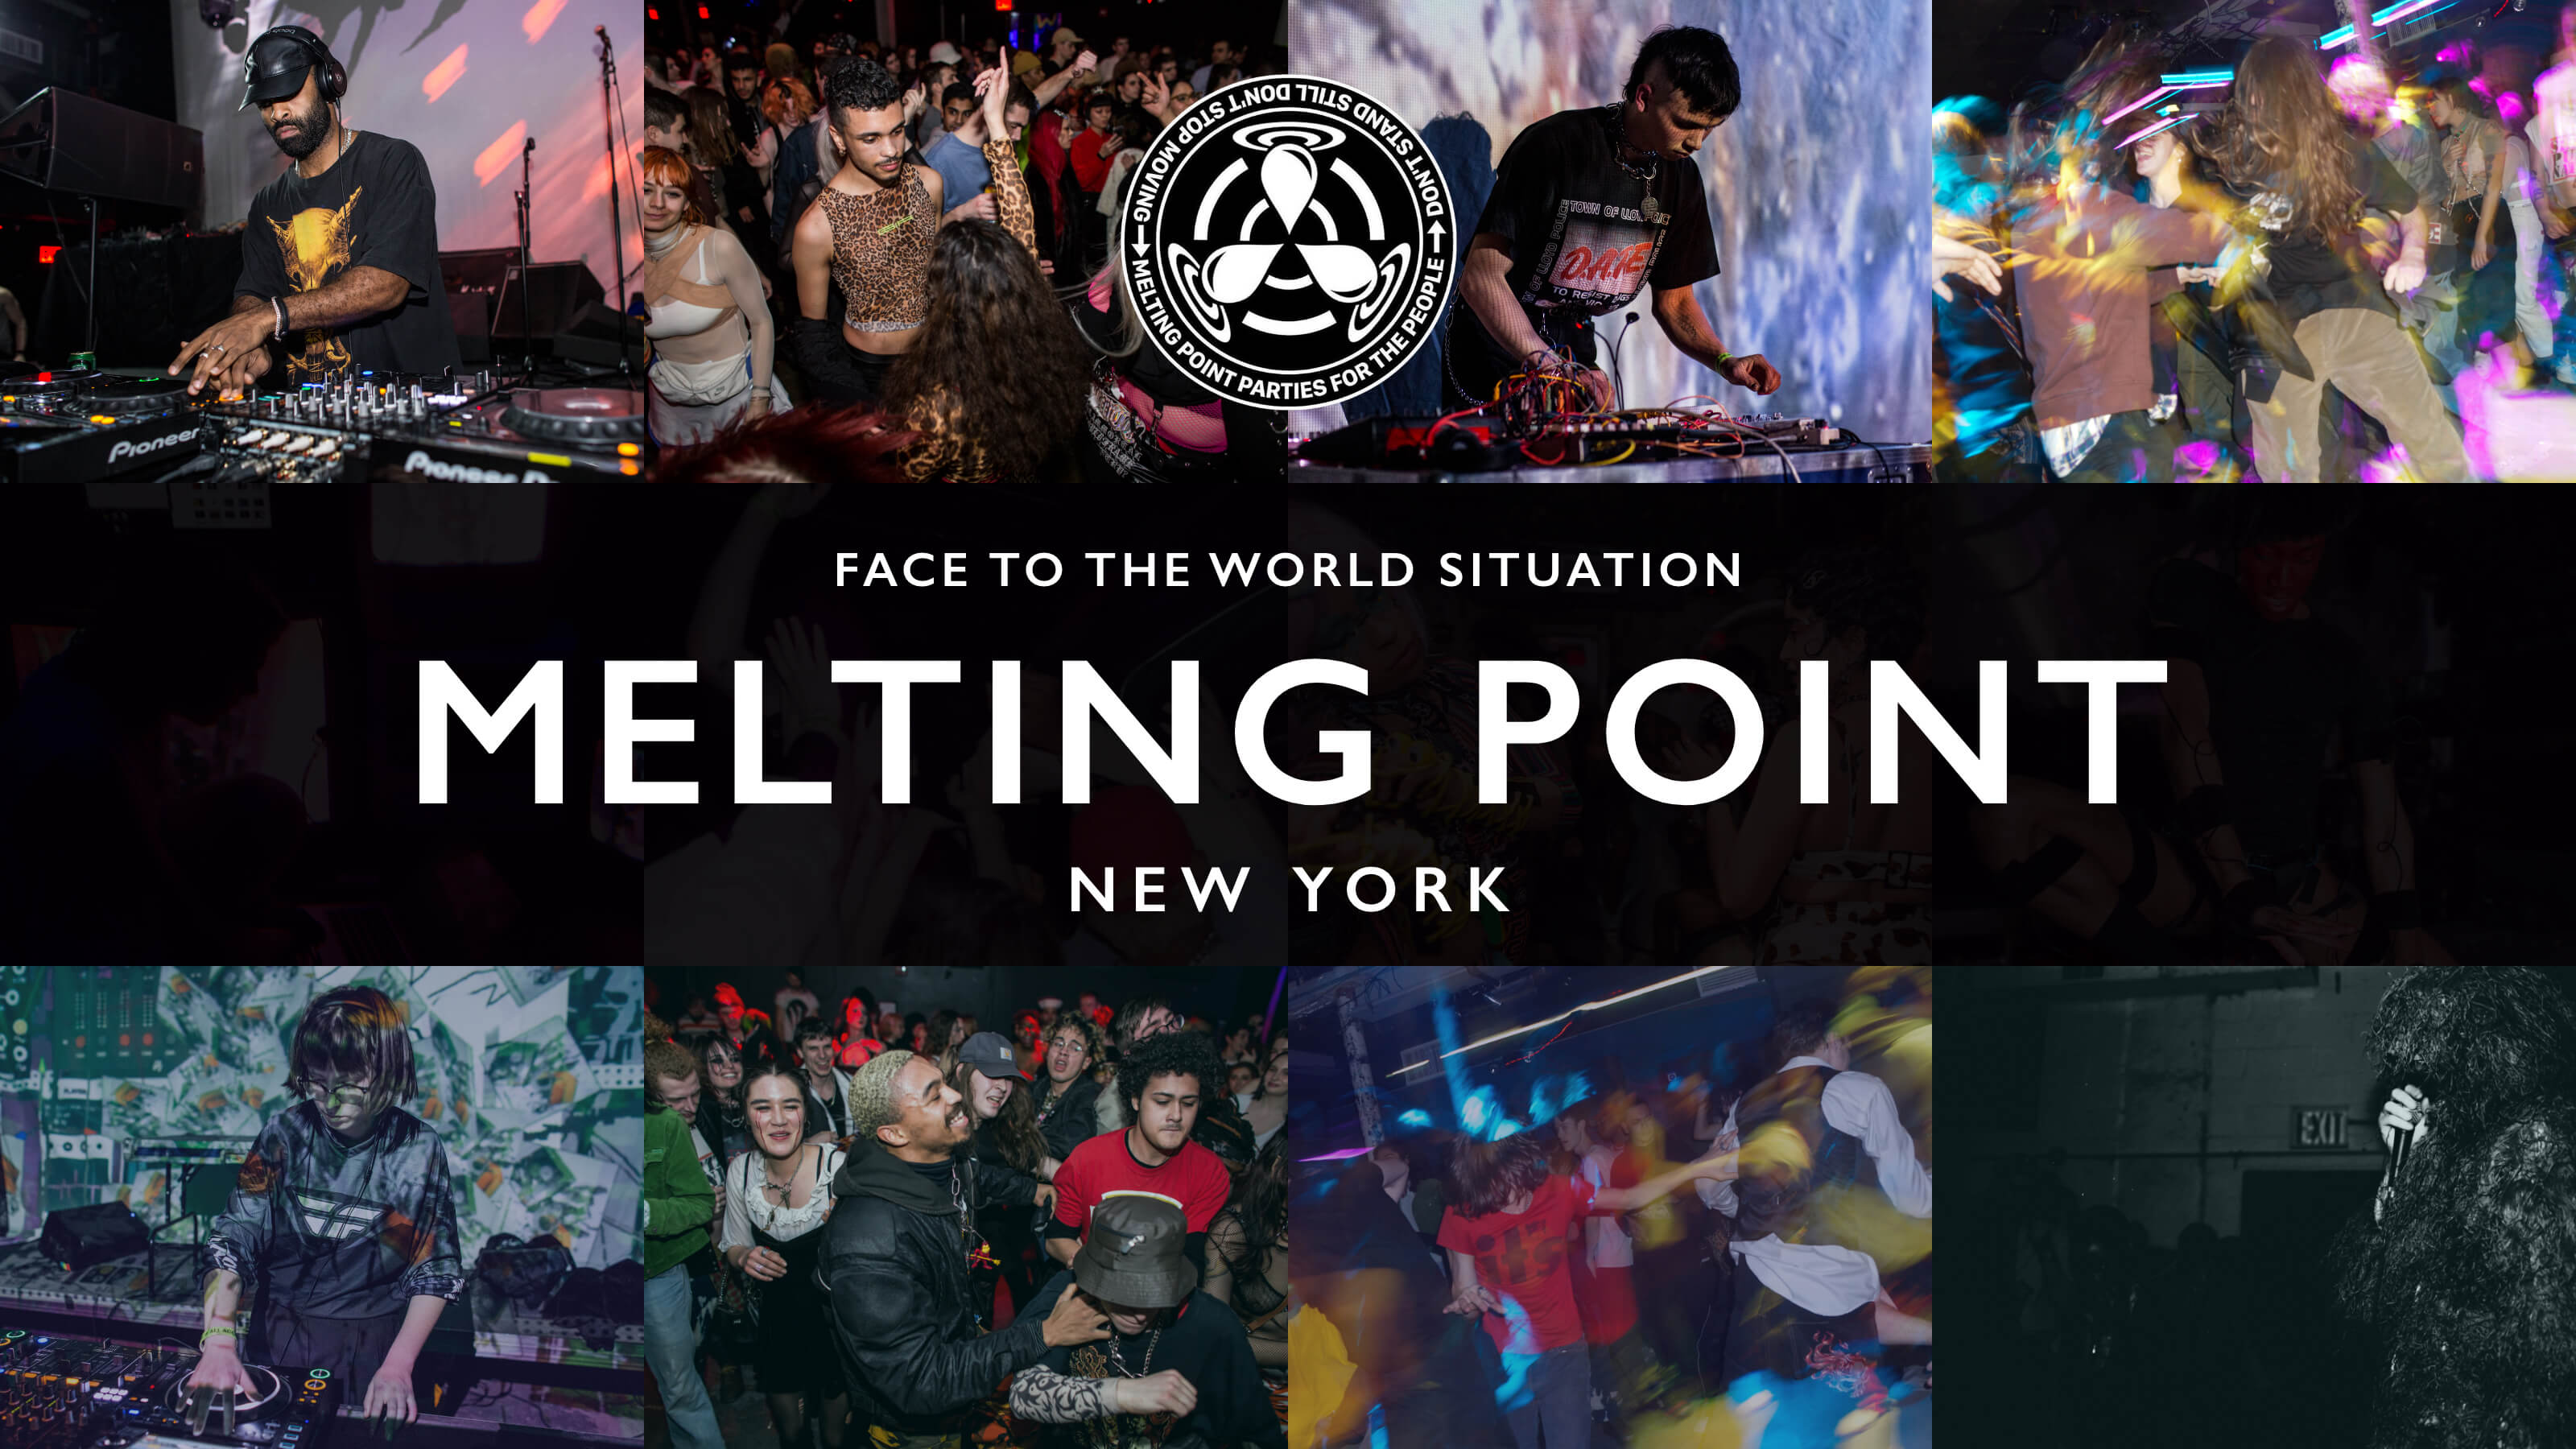 Face to the World Situation: Melting Point